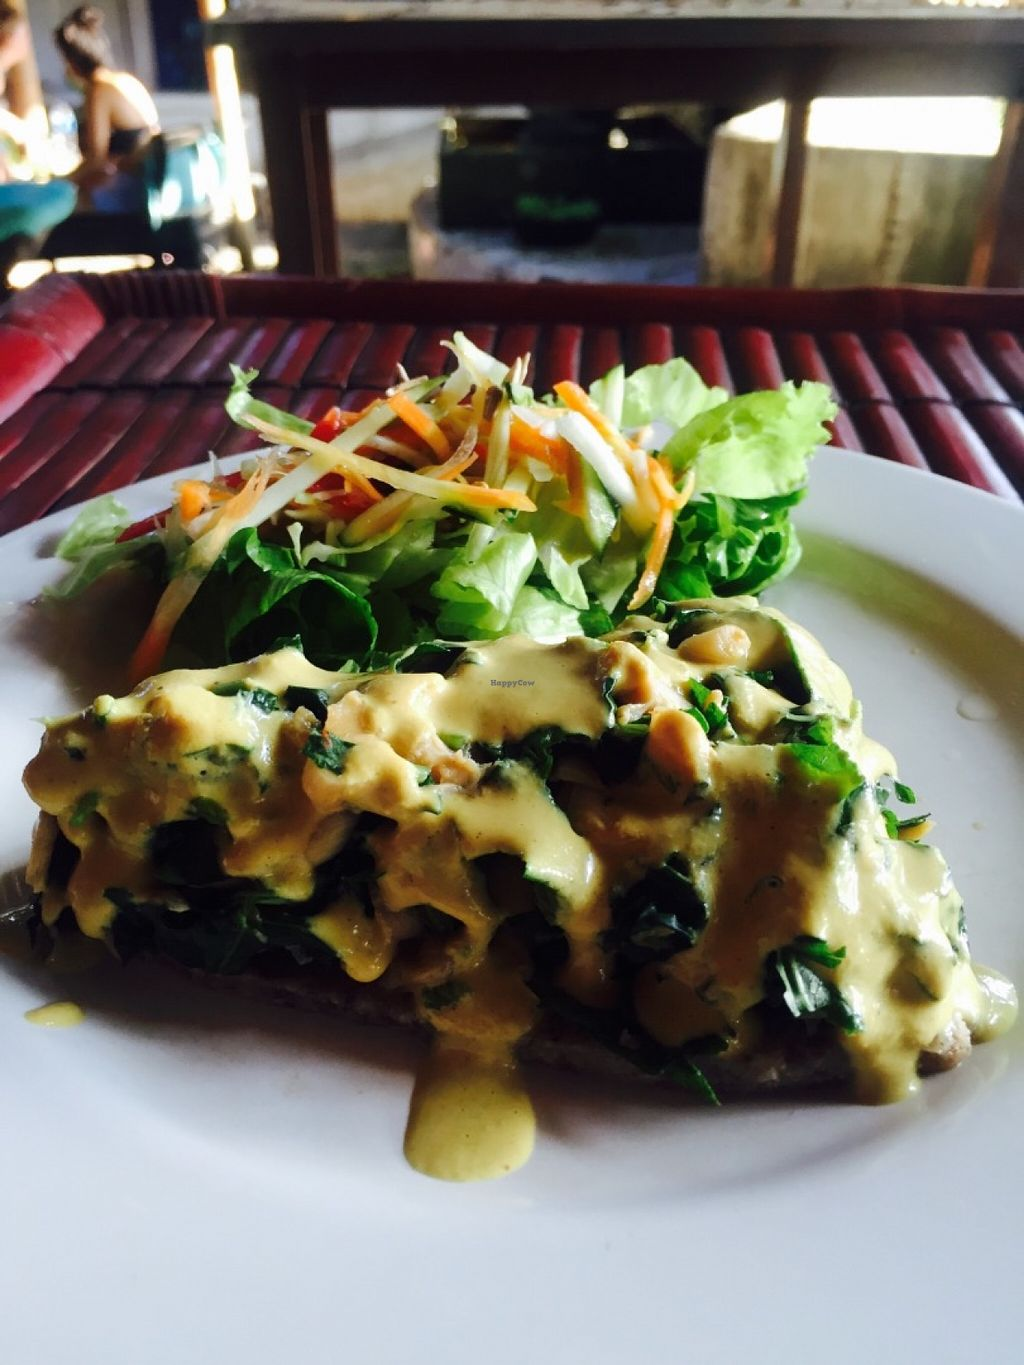 """Photo of Alkaline Restaurant  by <a href=""""/members/profile/rodgo"""">rodgo</a> <br/>Raw Spinach cake  <br/> July 2, 2016  - <a href='/contact/abuse/image/63426/157289'>Report</a>"""